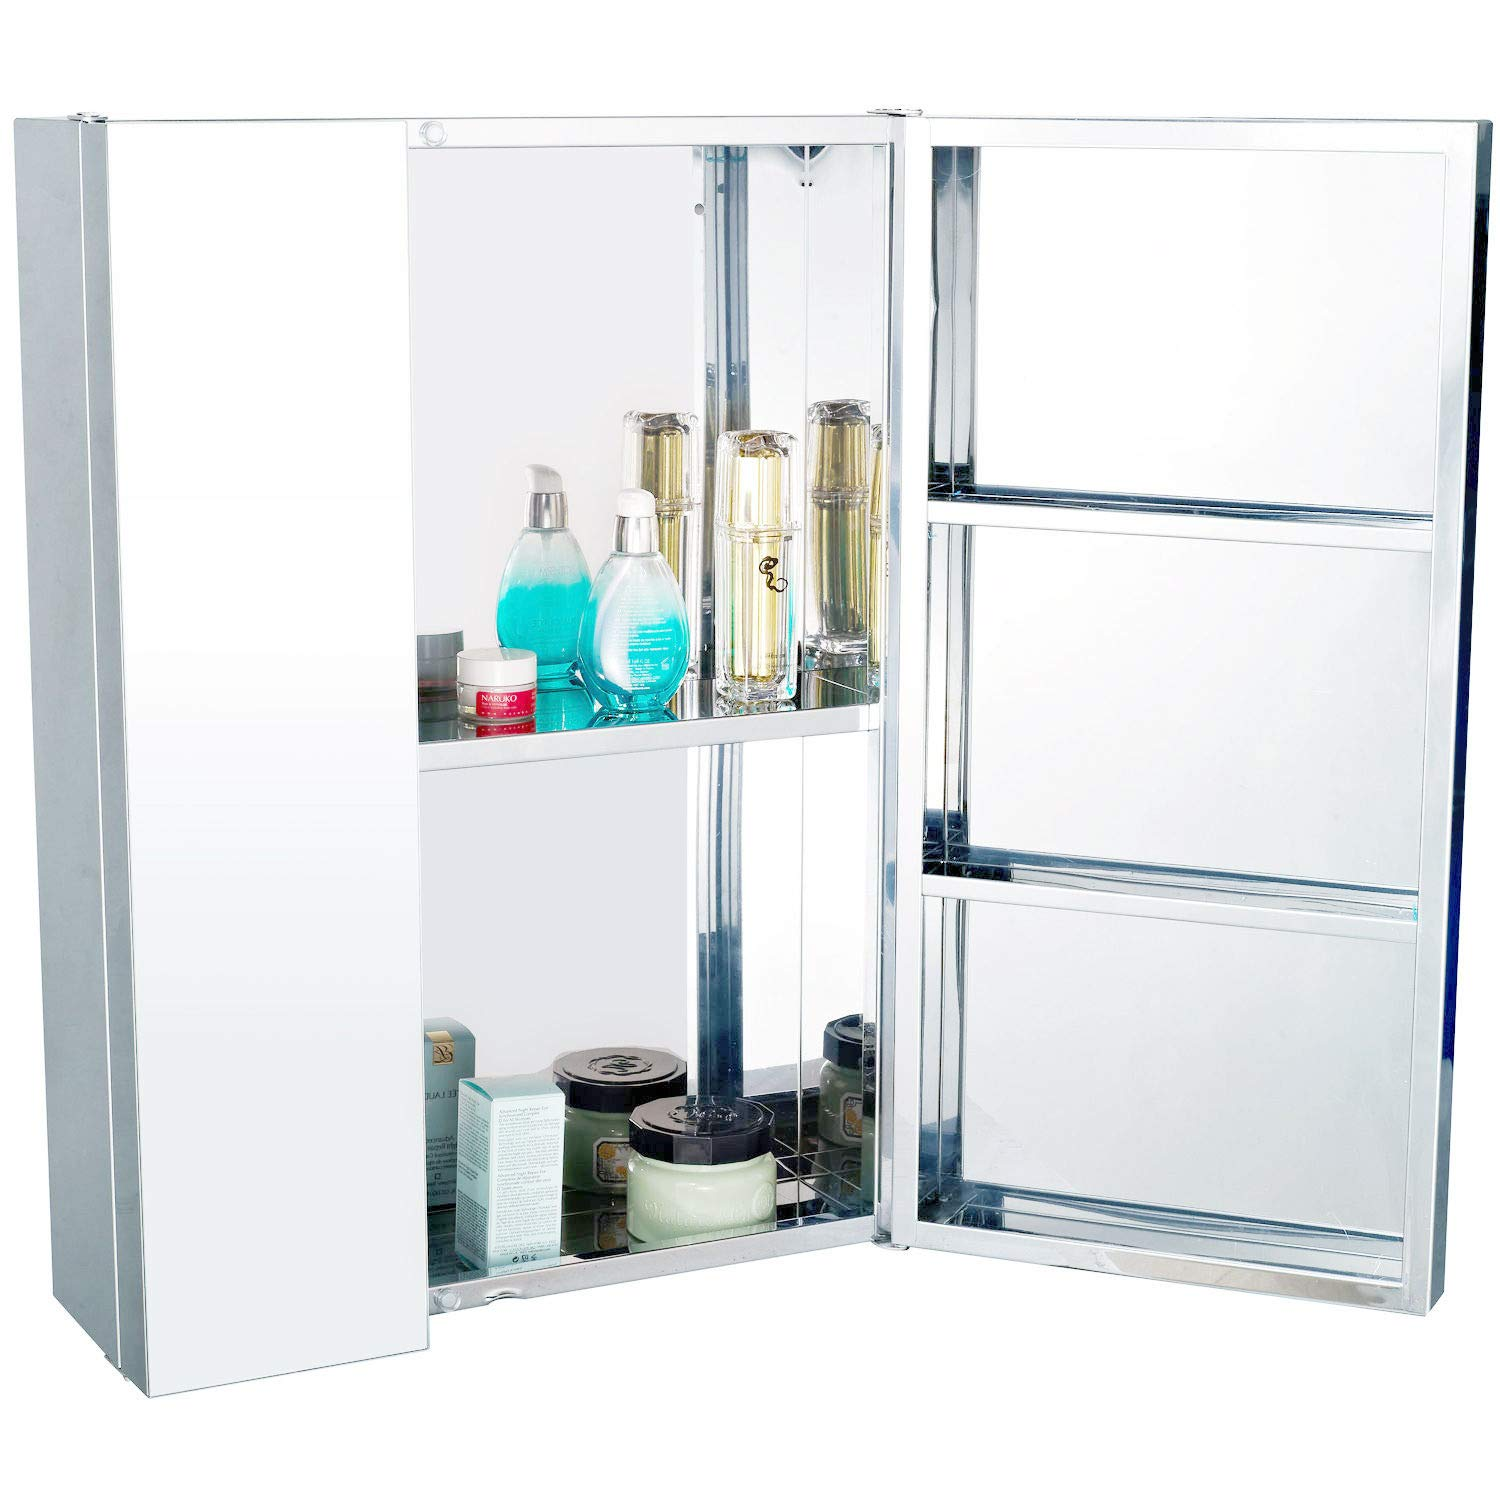 Homcom Stainless Steel Wall mounted Bathroom Mirror Storage Cabinet Double Doors 430mm (W) Sold by MHSTAR